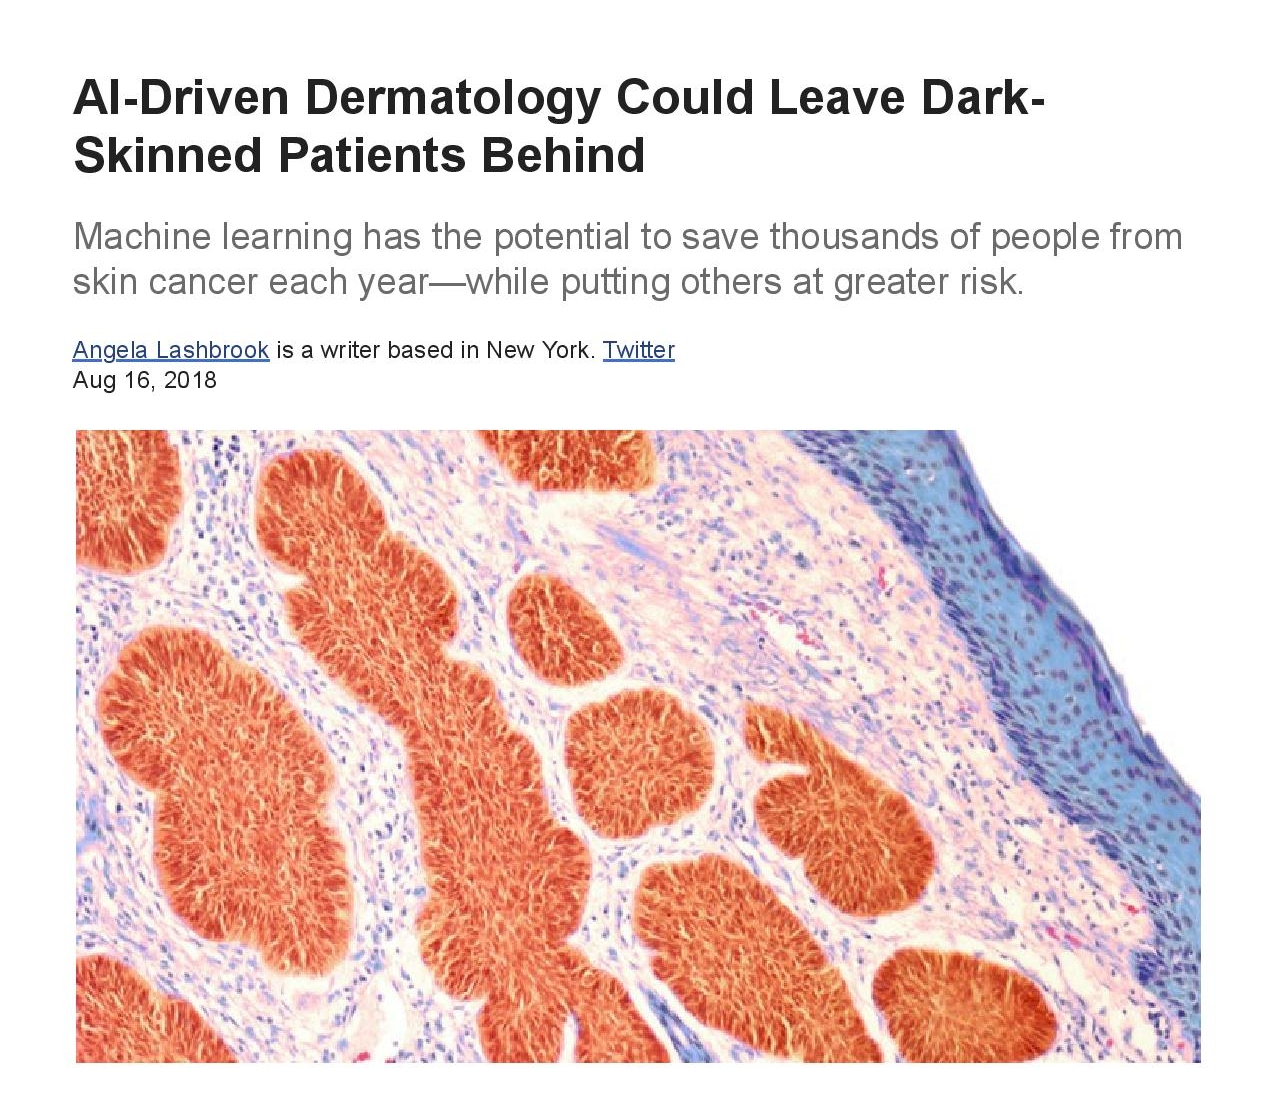 Fwd_ AI-Driven Dermatology Could Leave Dark-Skinned Patients Behind - The Atlantic - miguel@dermadicolore.com - Derma di Colore Mail-page-001.jpg